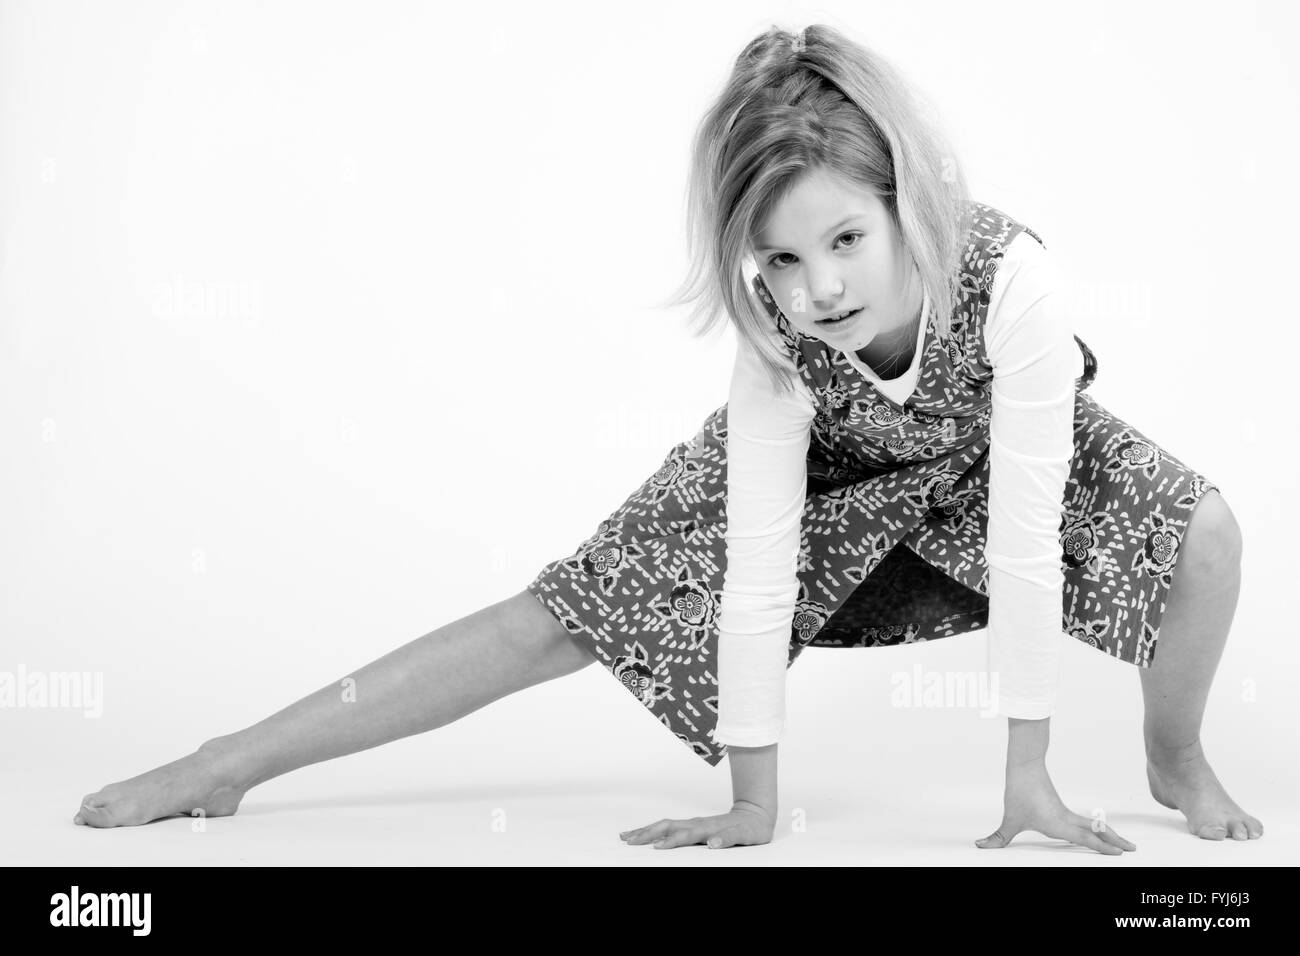 Blond child in black and white - Stock Image